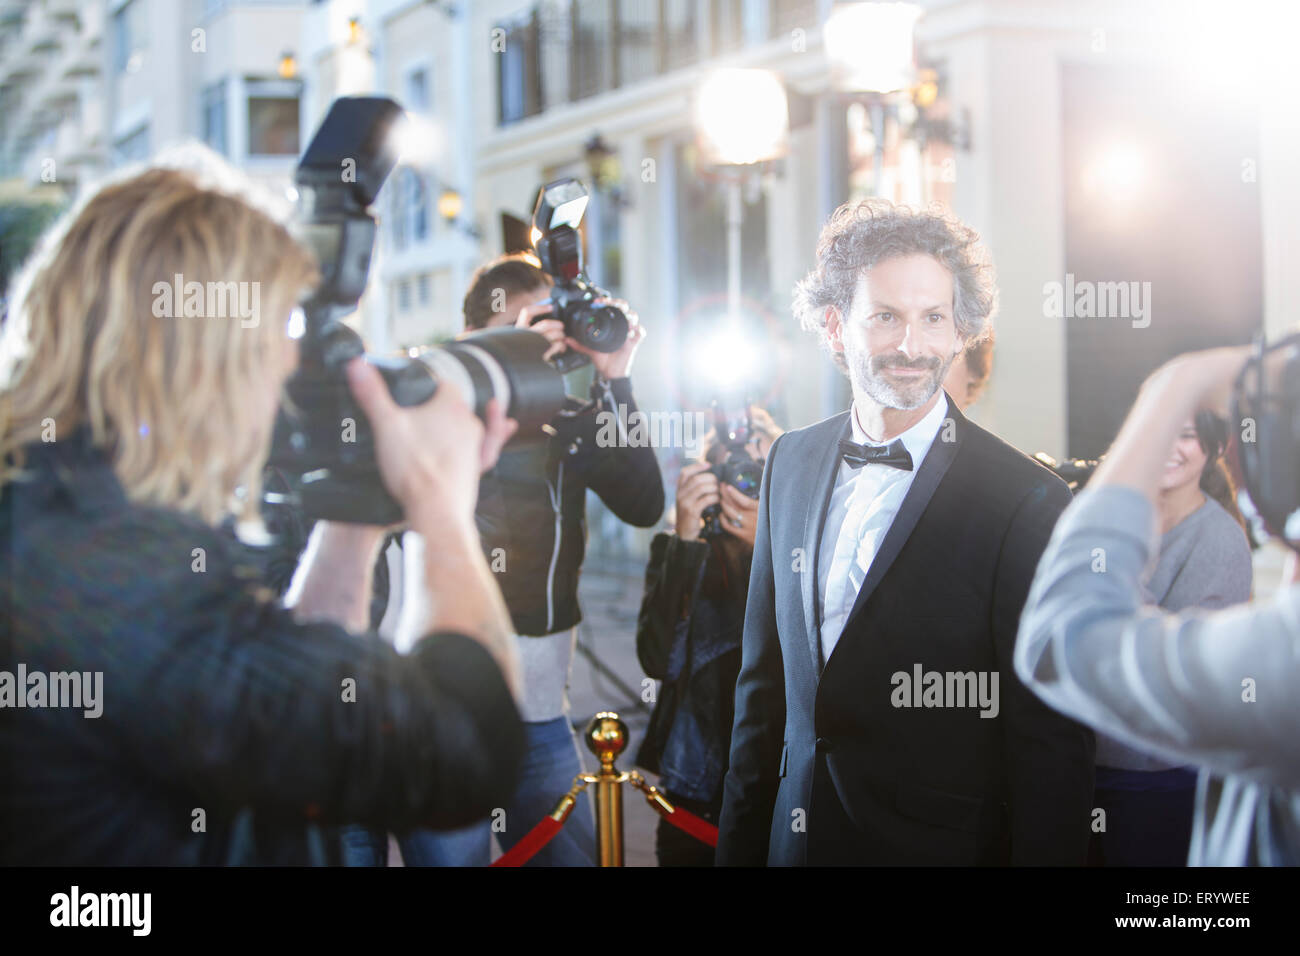 Smiling celebrity in tuxedo being photographed by paparazzi at red carpet event - Stock Image